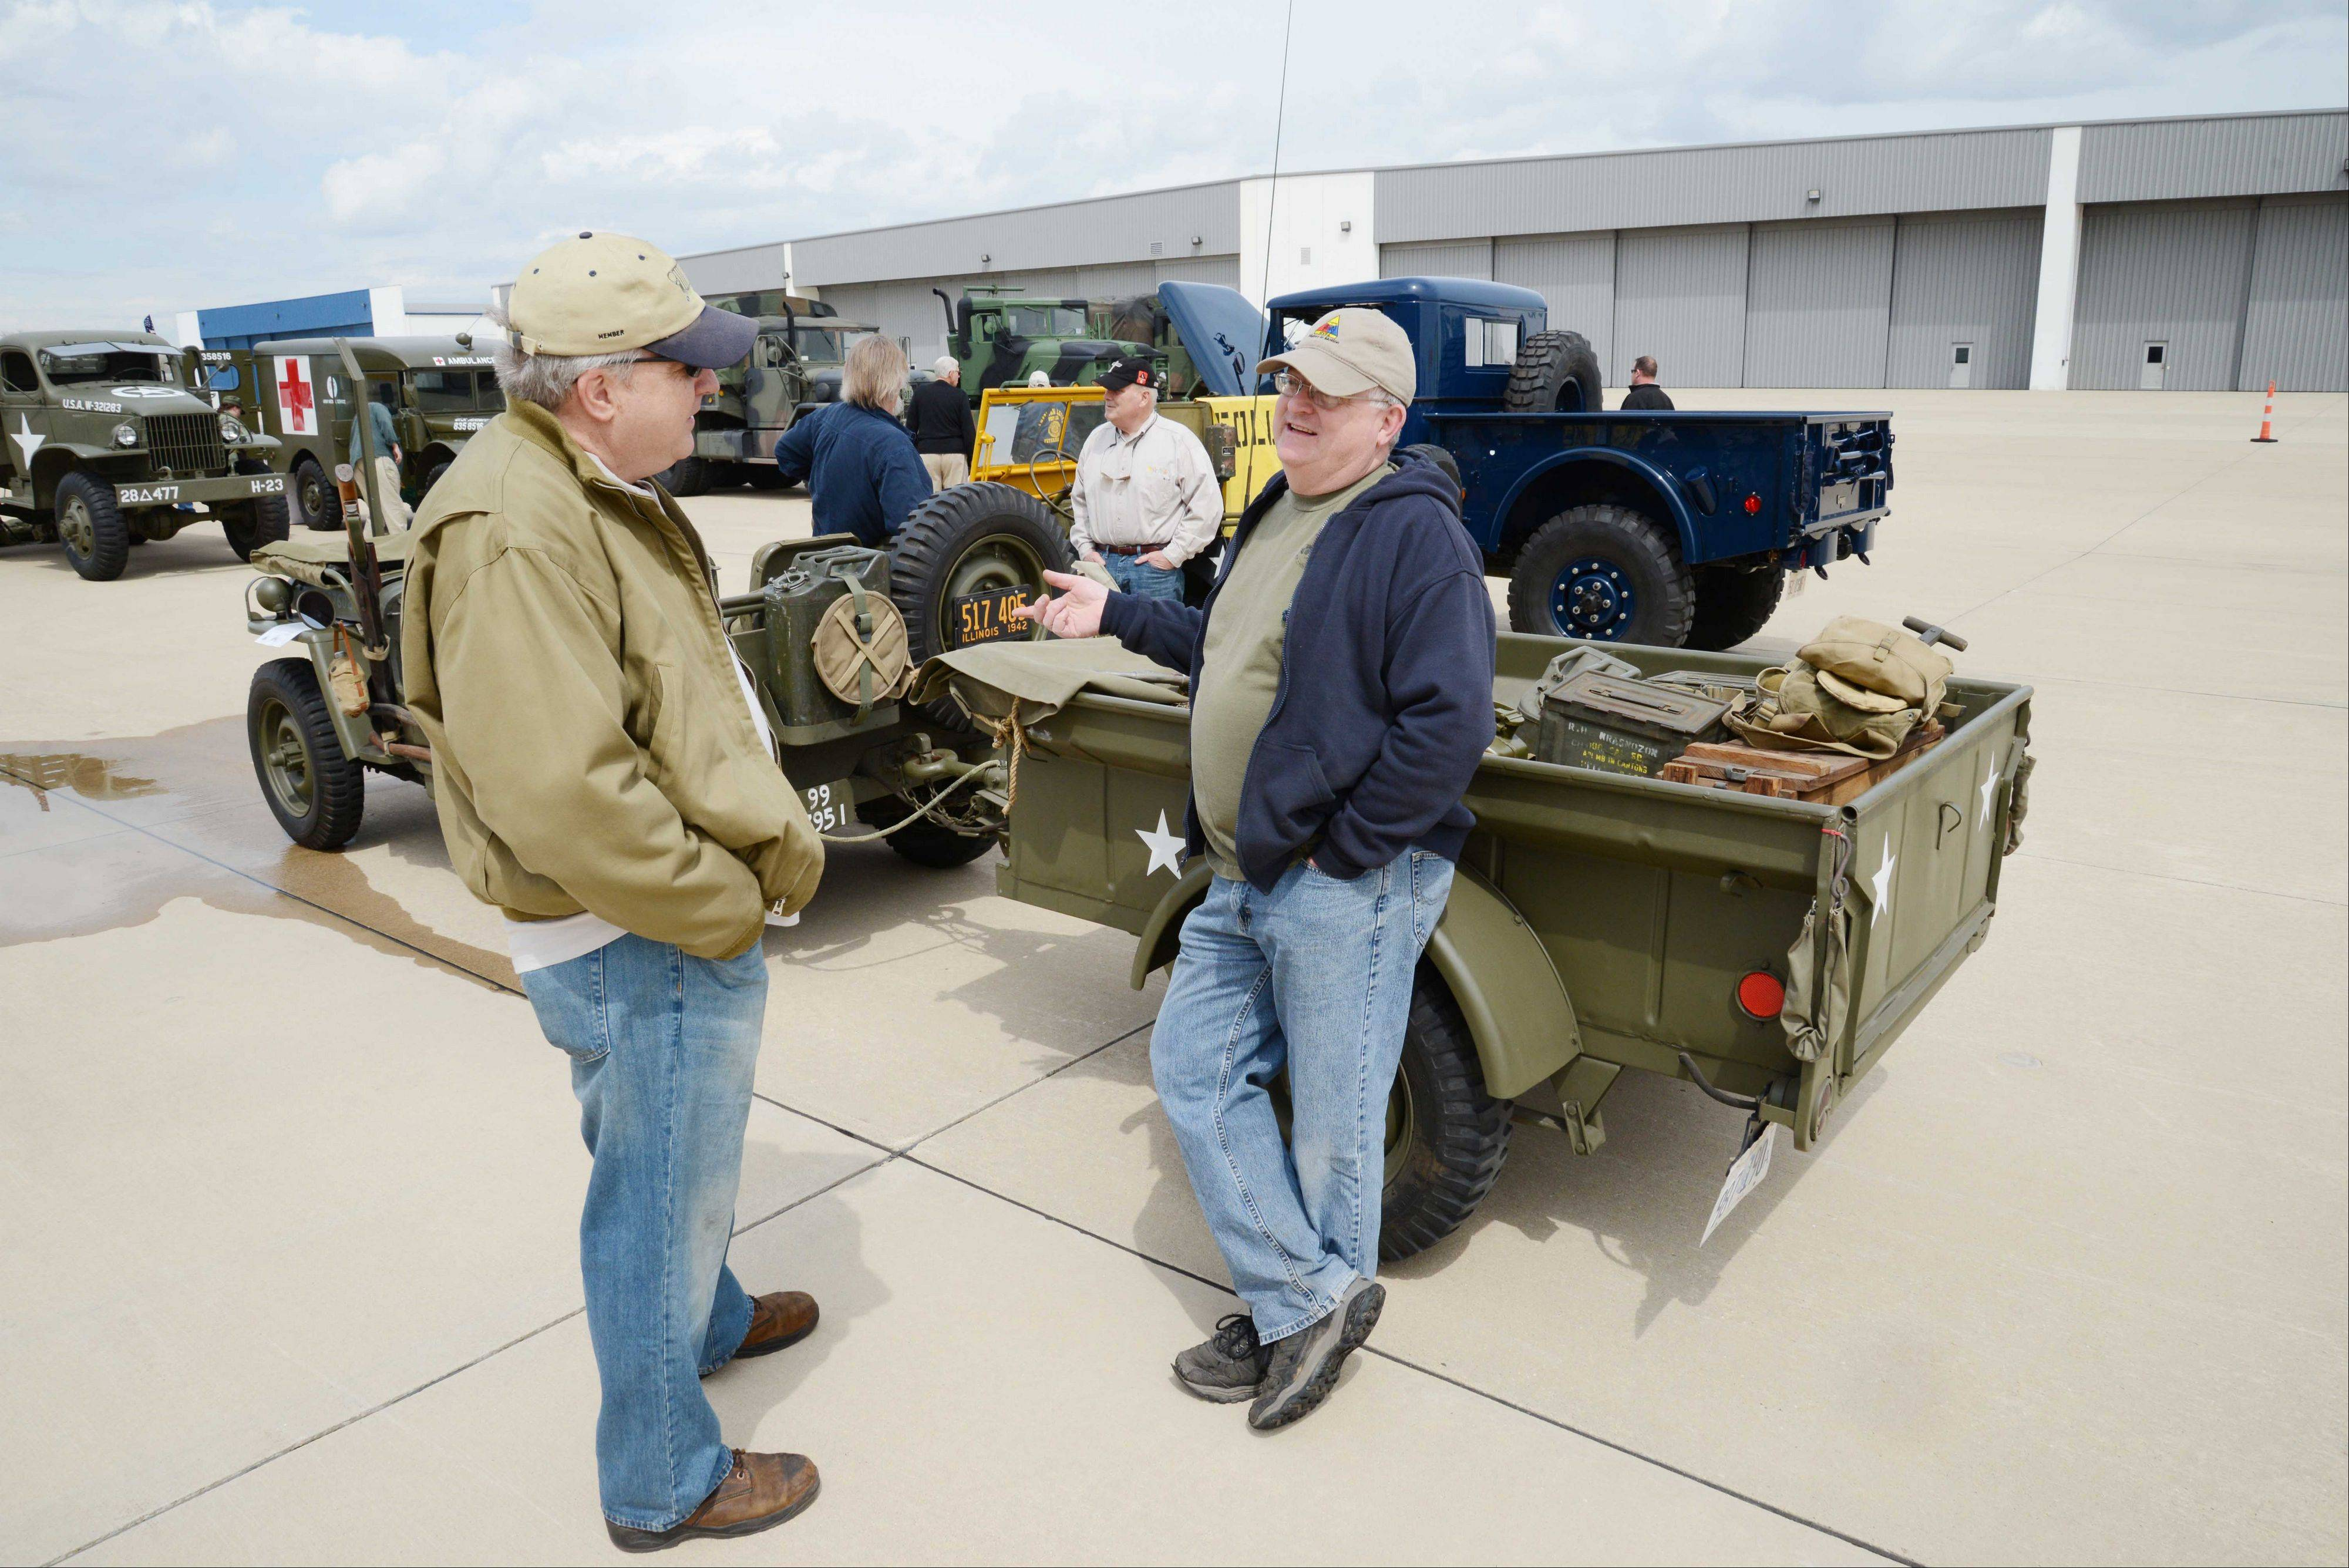 Tom Lachowiez of Downers Grove leans against a 1942 Ford GPW as he talks with Steve Earl of Geneva left, during a fundraiser for Honor Flight Chicago Saturday at DuPage Airport. The event, hosted by the DuPage Veterans Foundation, included lunch with veterans.